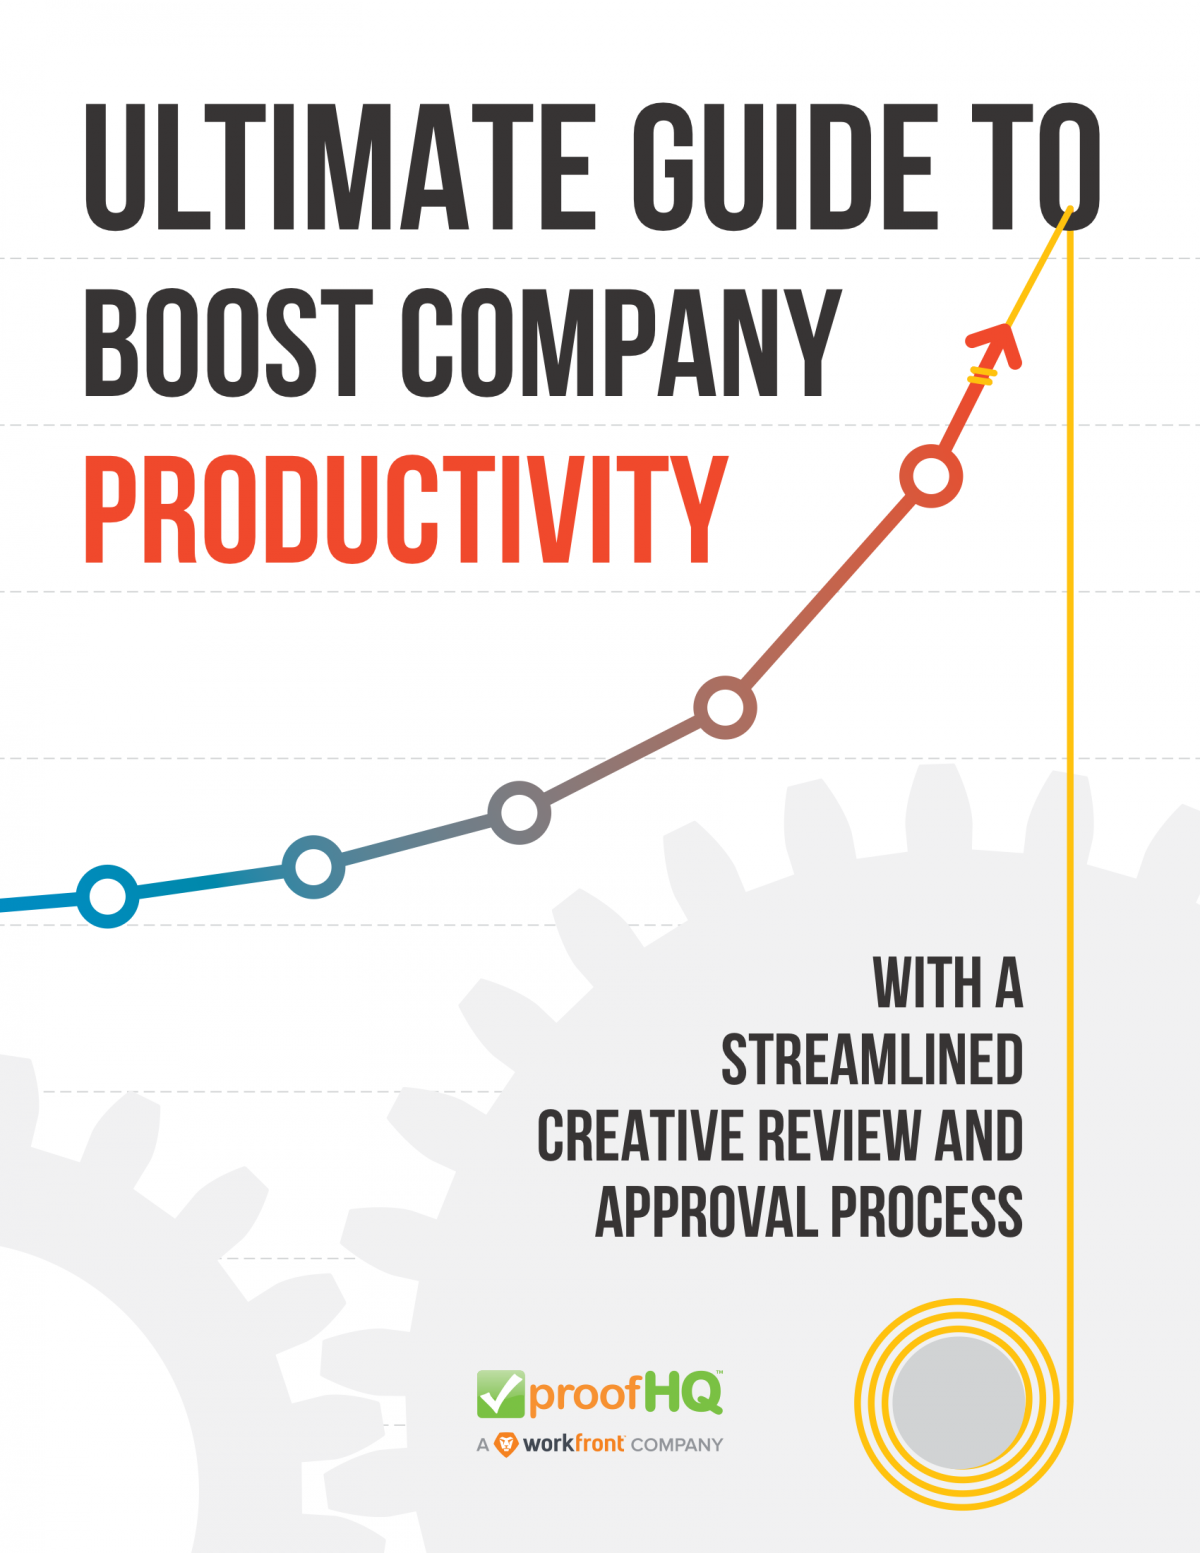 Boost Company Productivity With A Streamlined Creative Review And Approval Process